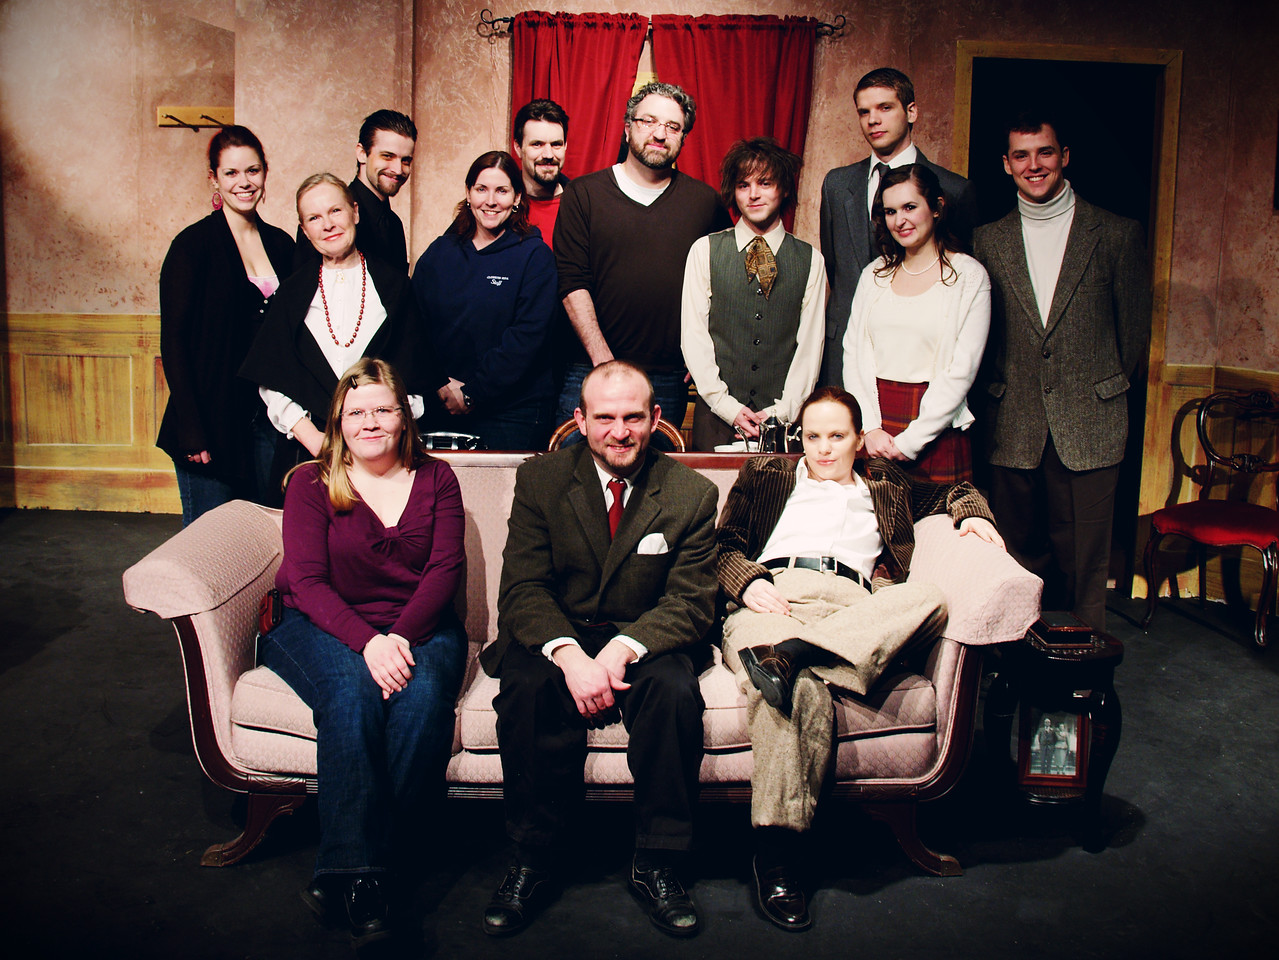 Cast and Crew<br /> <br /> Standing:  Miranda McKinley, Sheena Gilks, Adam Sanderson, Lori Williams, Mat Kelly, Andrew Salter, Josh Ezekiel, Liam Frape, Lindsay Palmateer, Adam Cyr,<br /> Seated: Jenny Hill, Tye Zinger, Carrie McNabb<br /> Missing: Jonny Arnold, Dustin Windibank